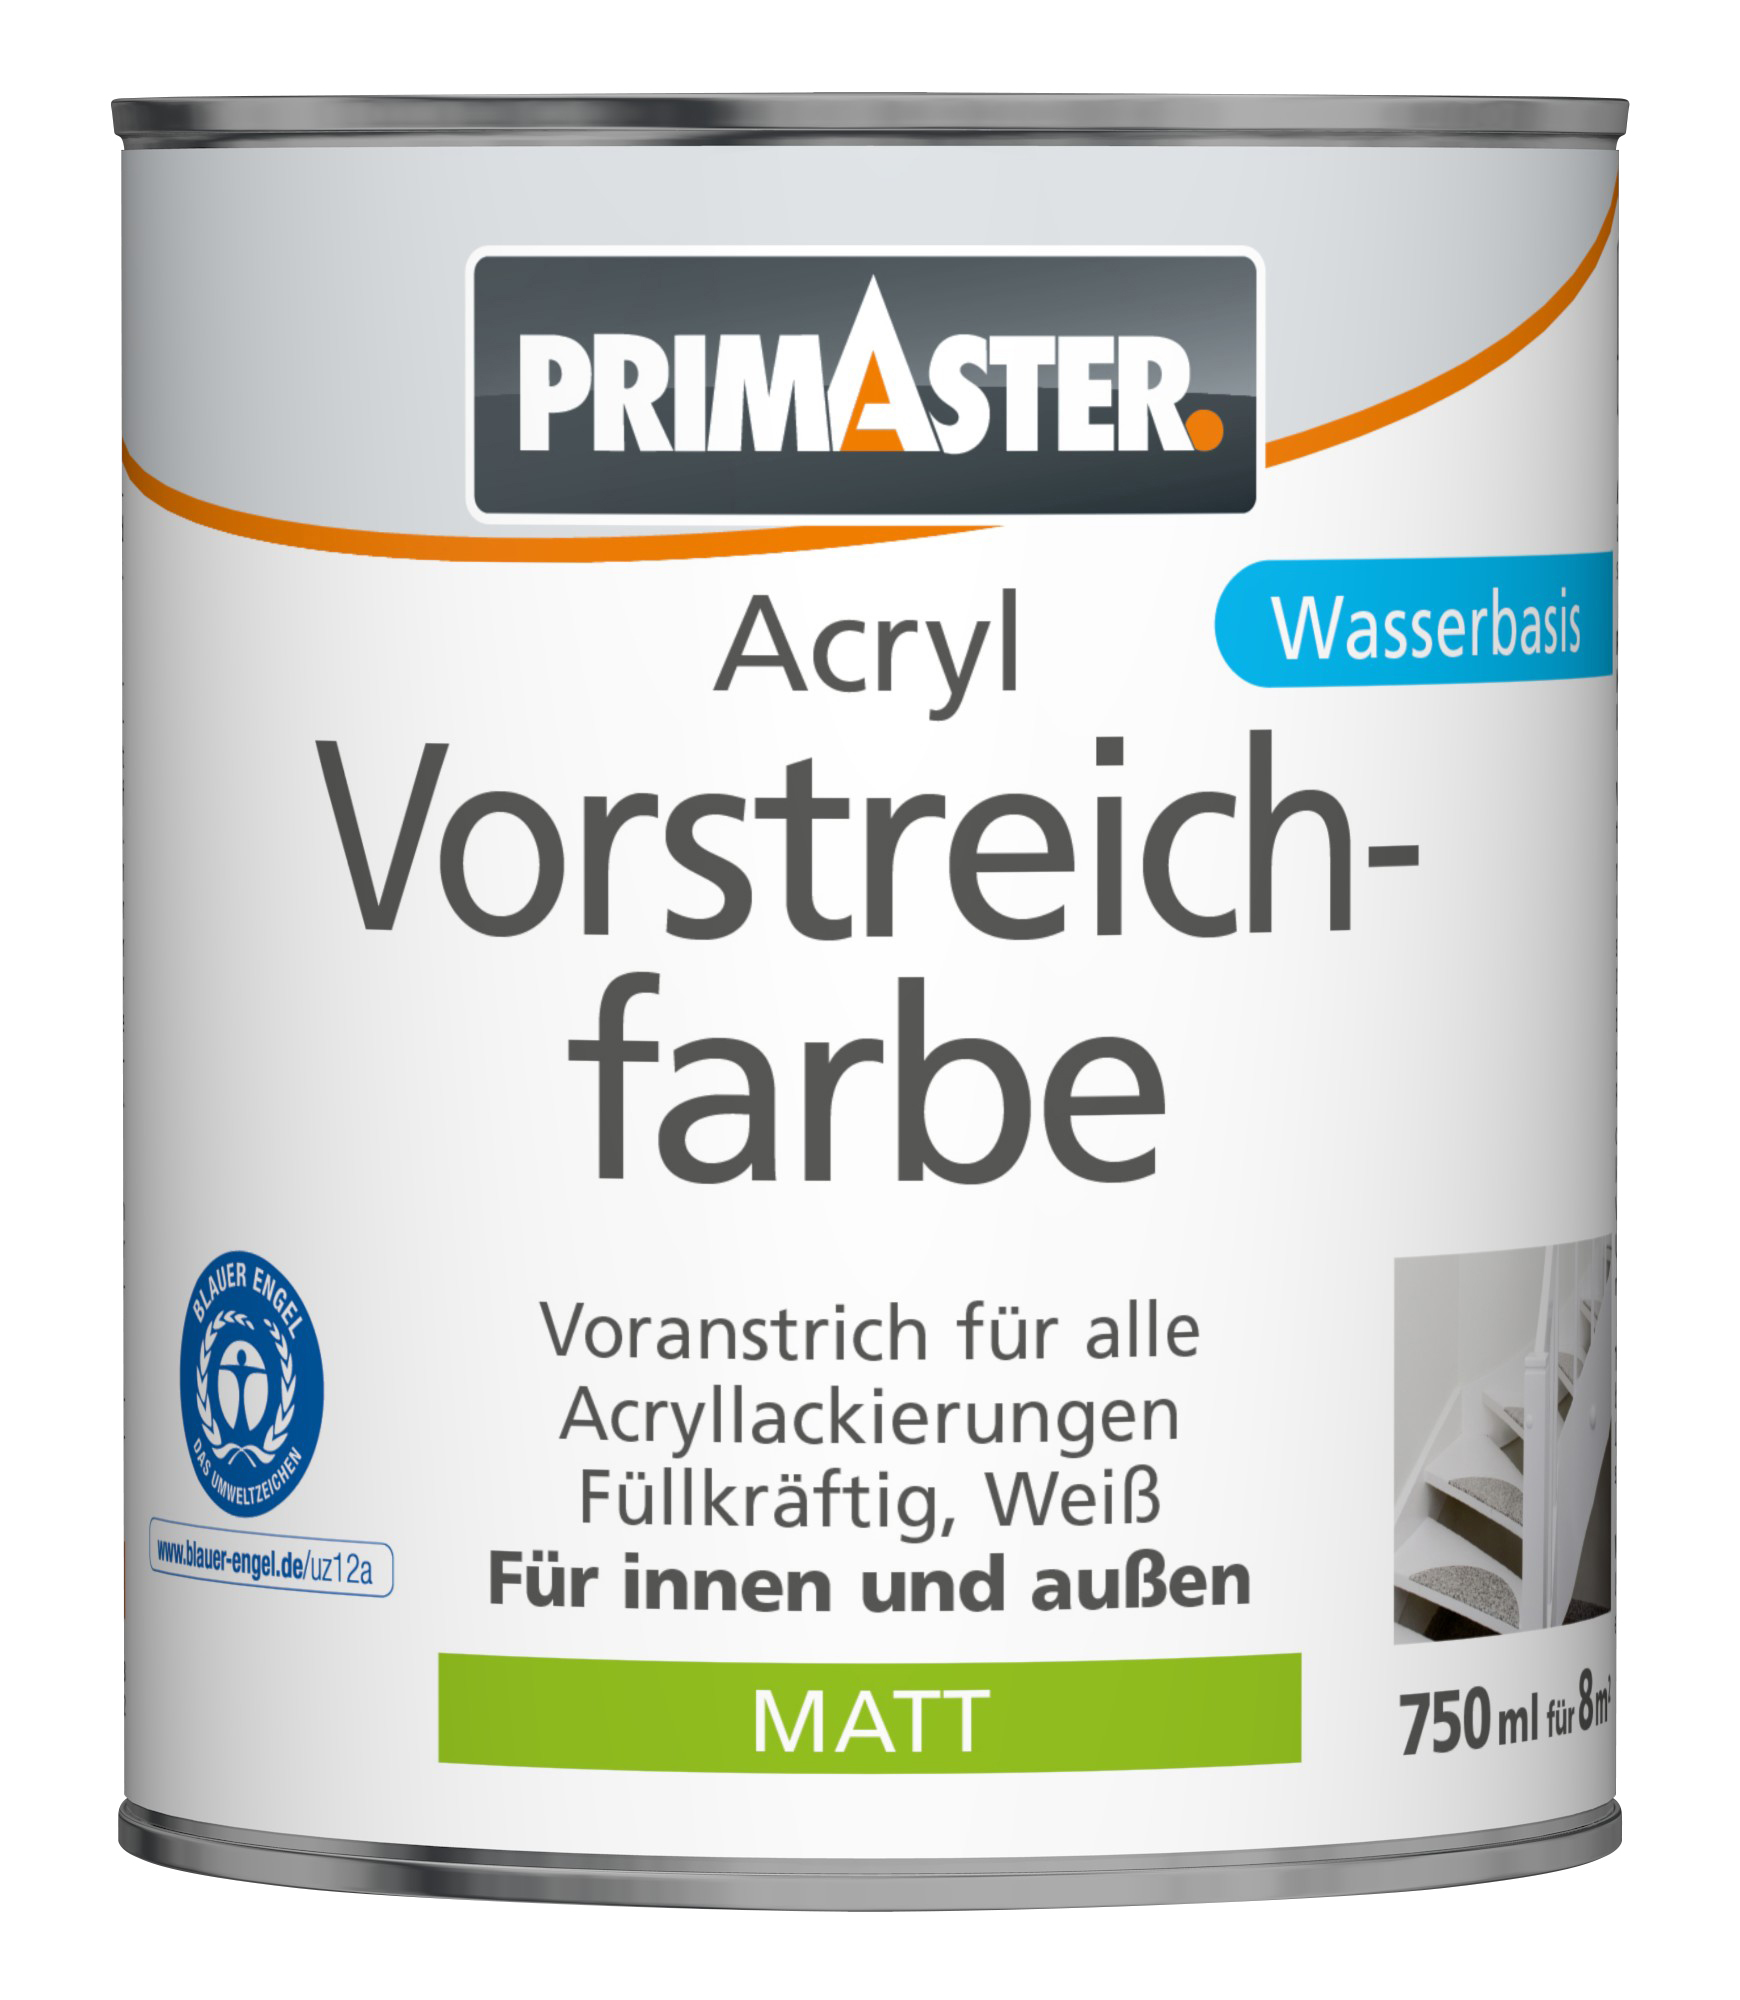 primaster acryl vorstreichfarbe grundierungen globus baumarkt online shop. Black Bedroom Furniture Sets. Home Design Ideas